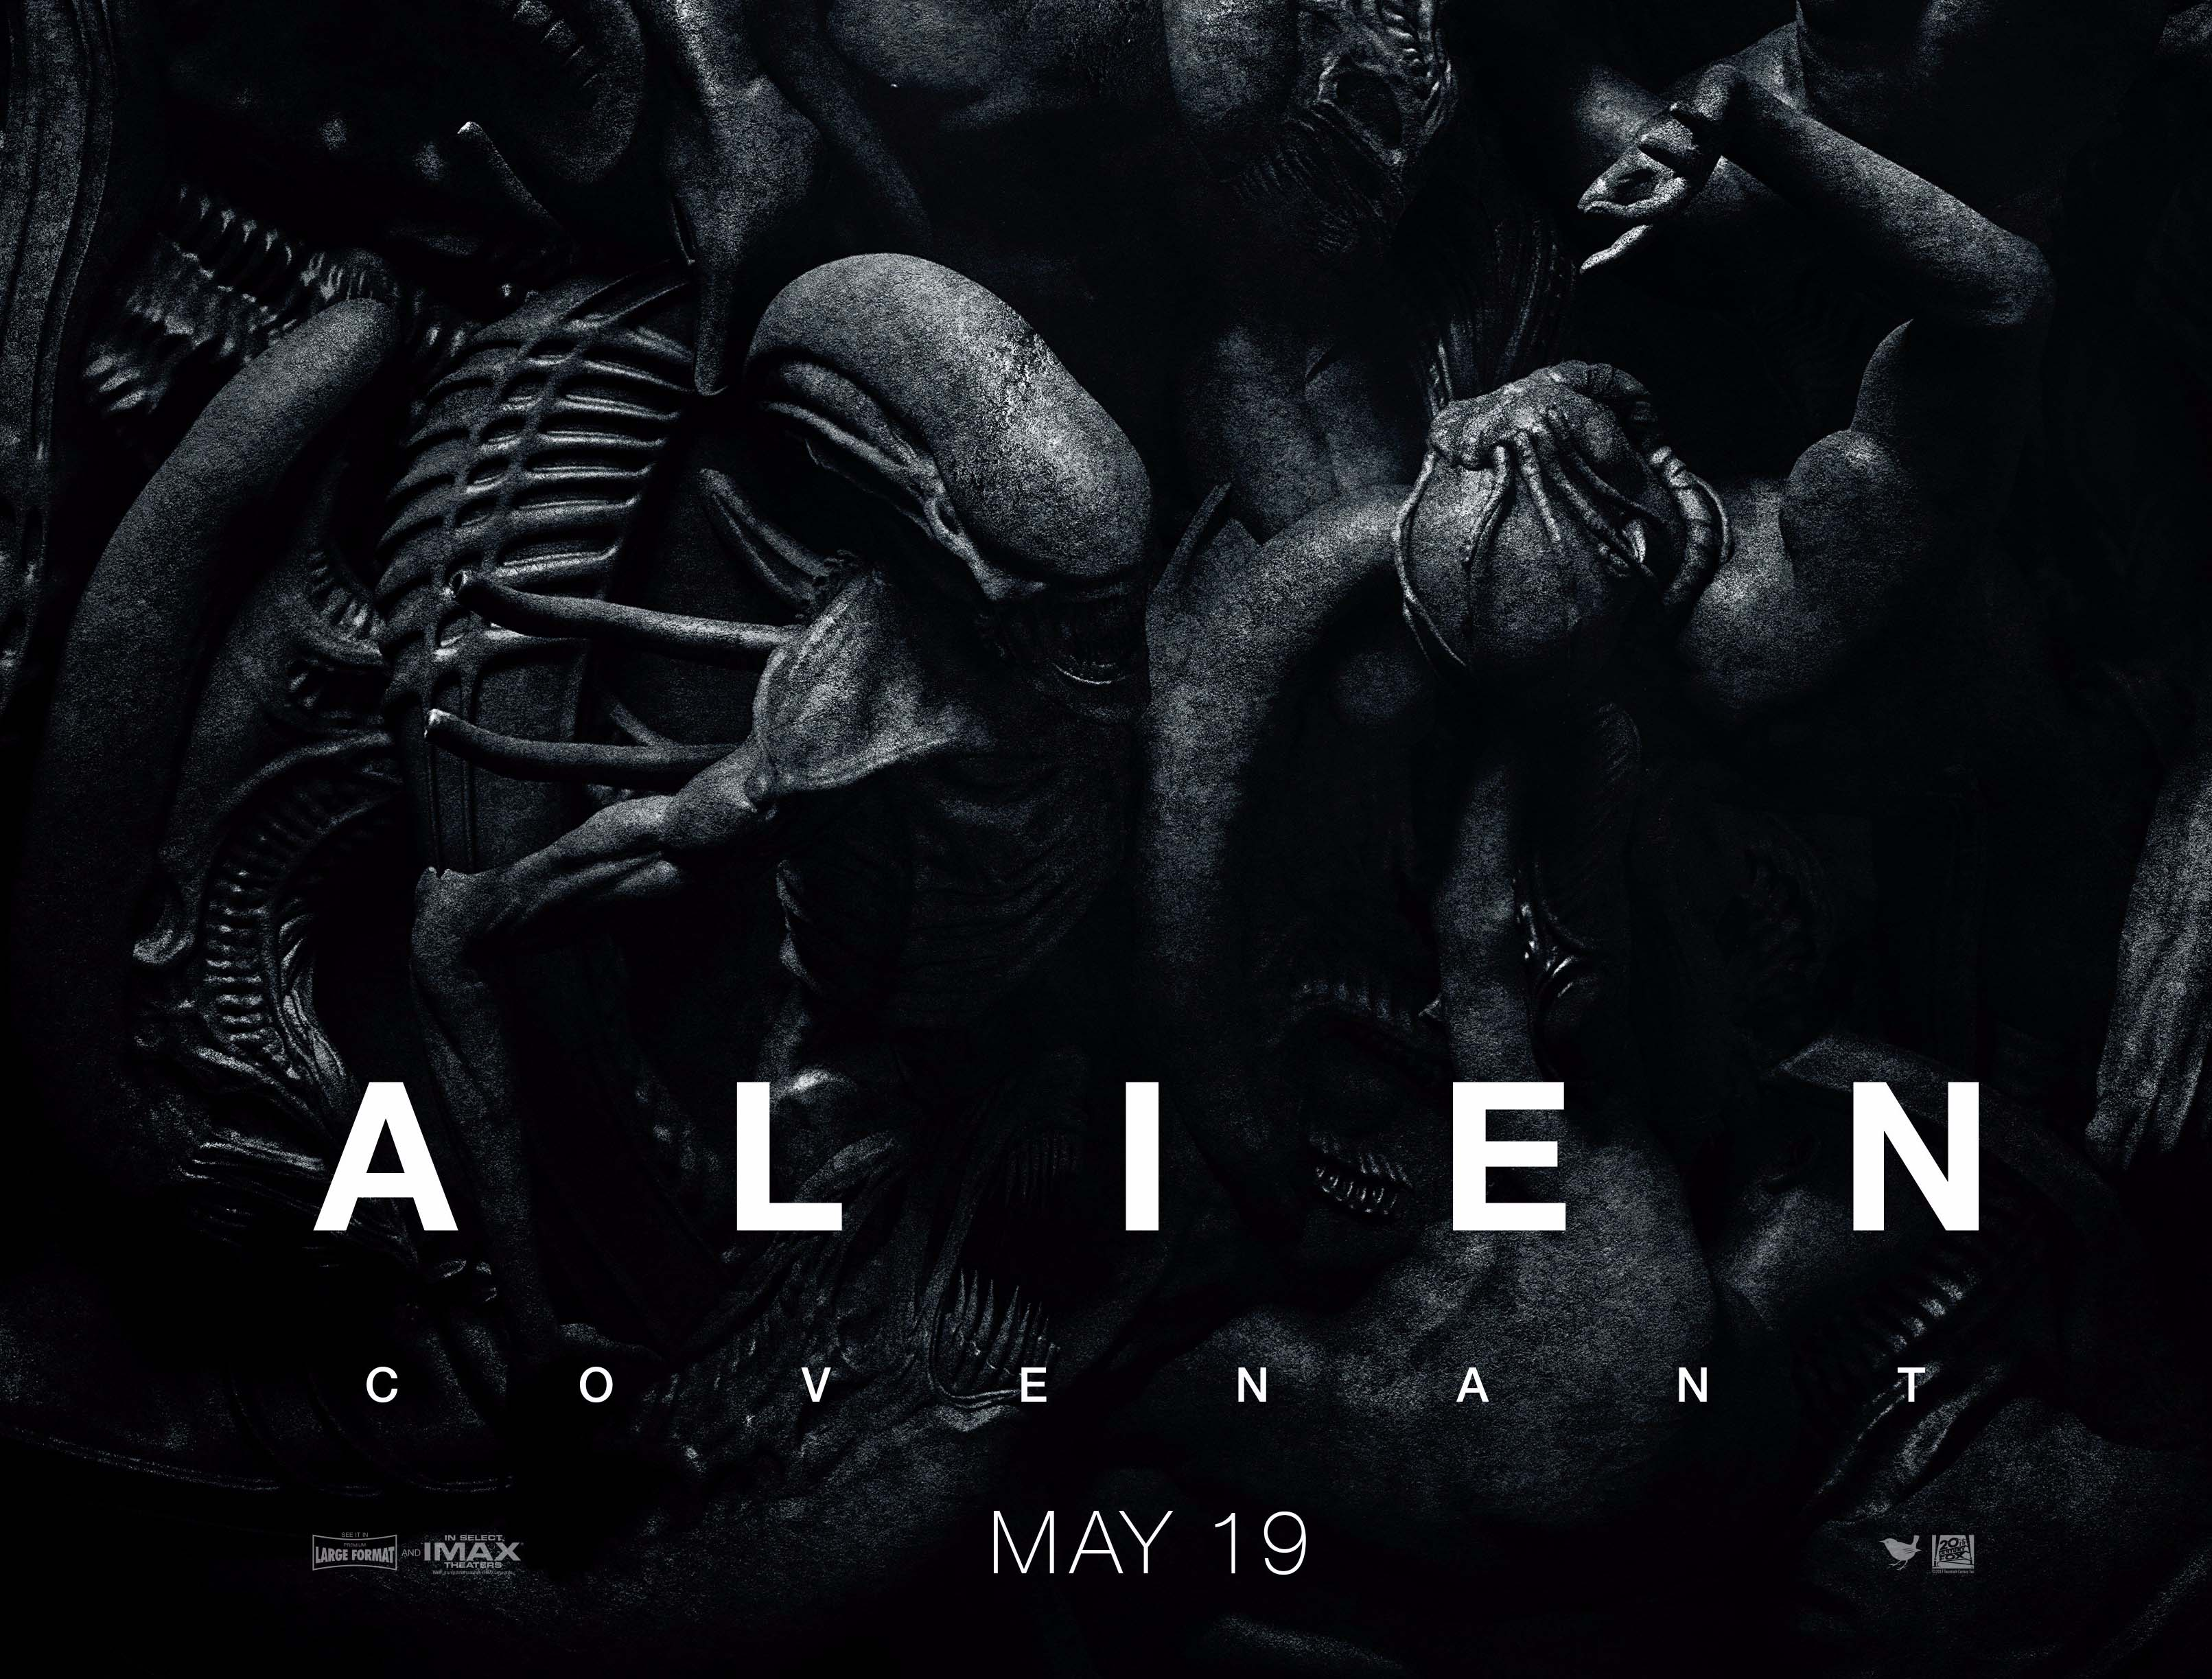 Alien Covenant film review post image